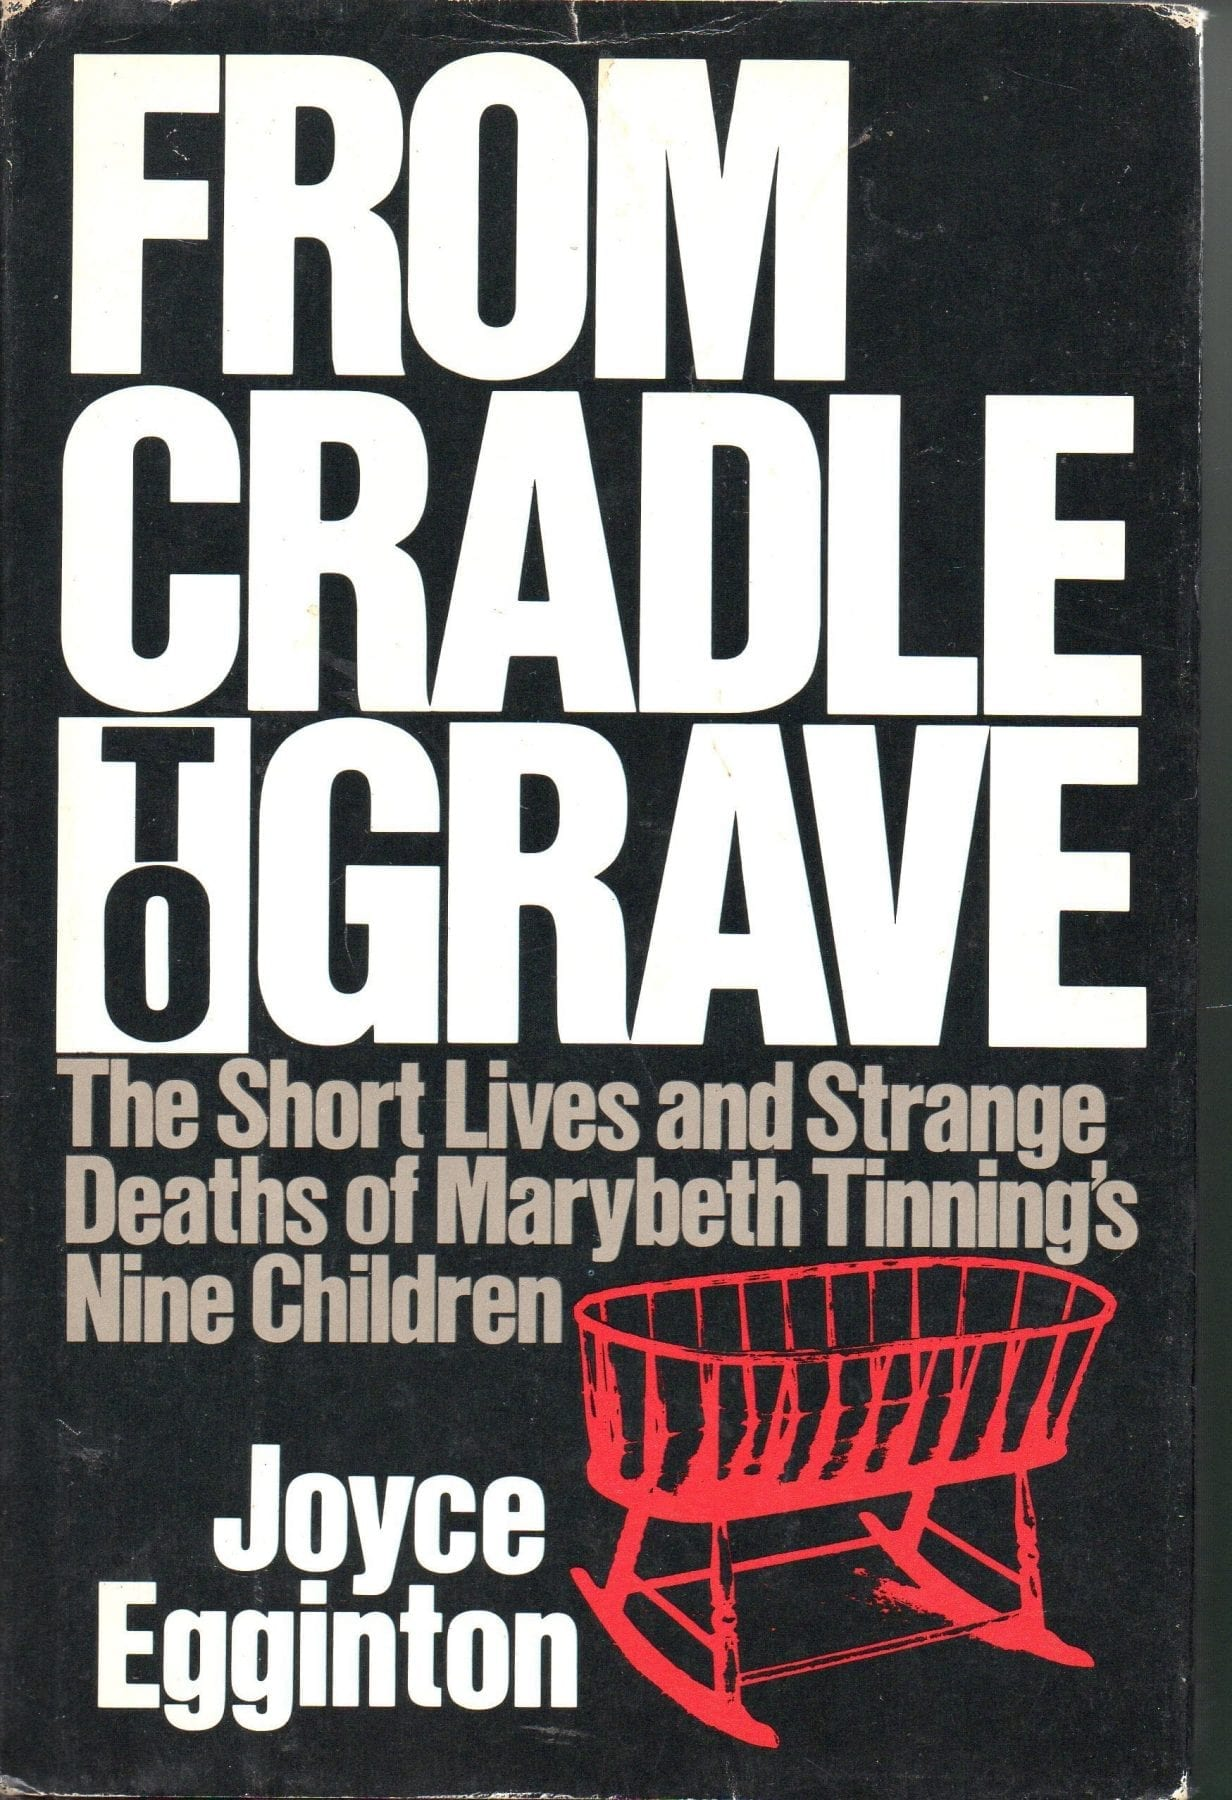 From Cradle to Grave- The Short Lives and Strange Deaths of Maybeth Tinning's Nine Children by Joyce Egginton